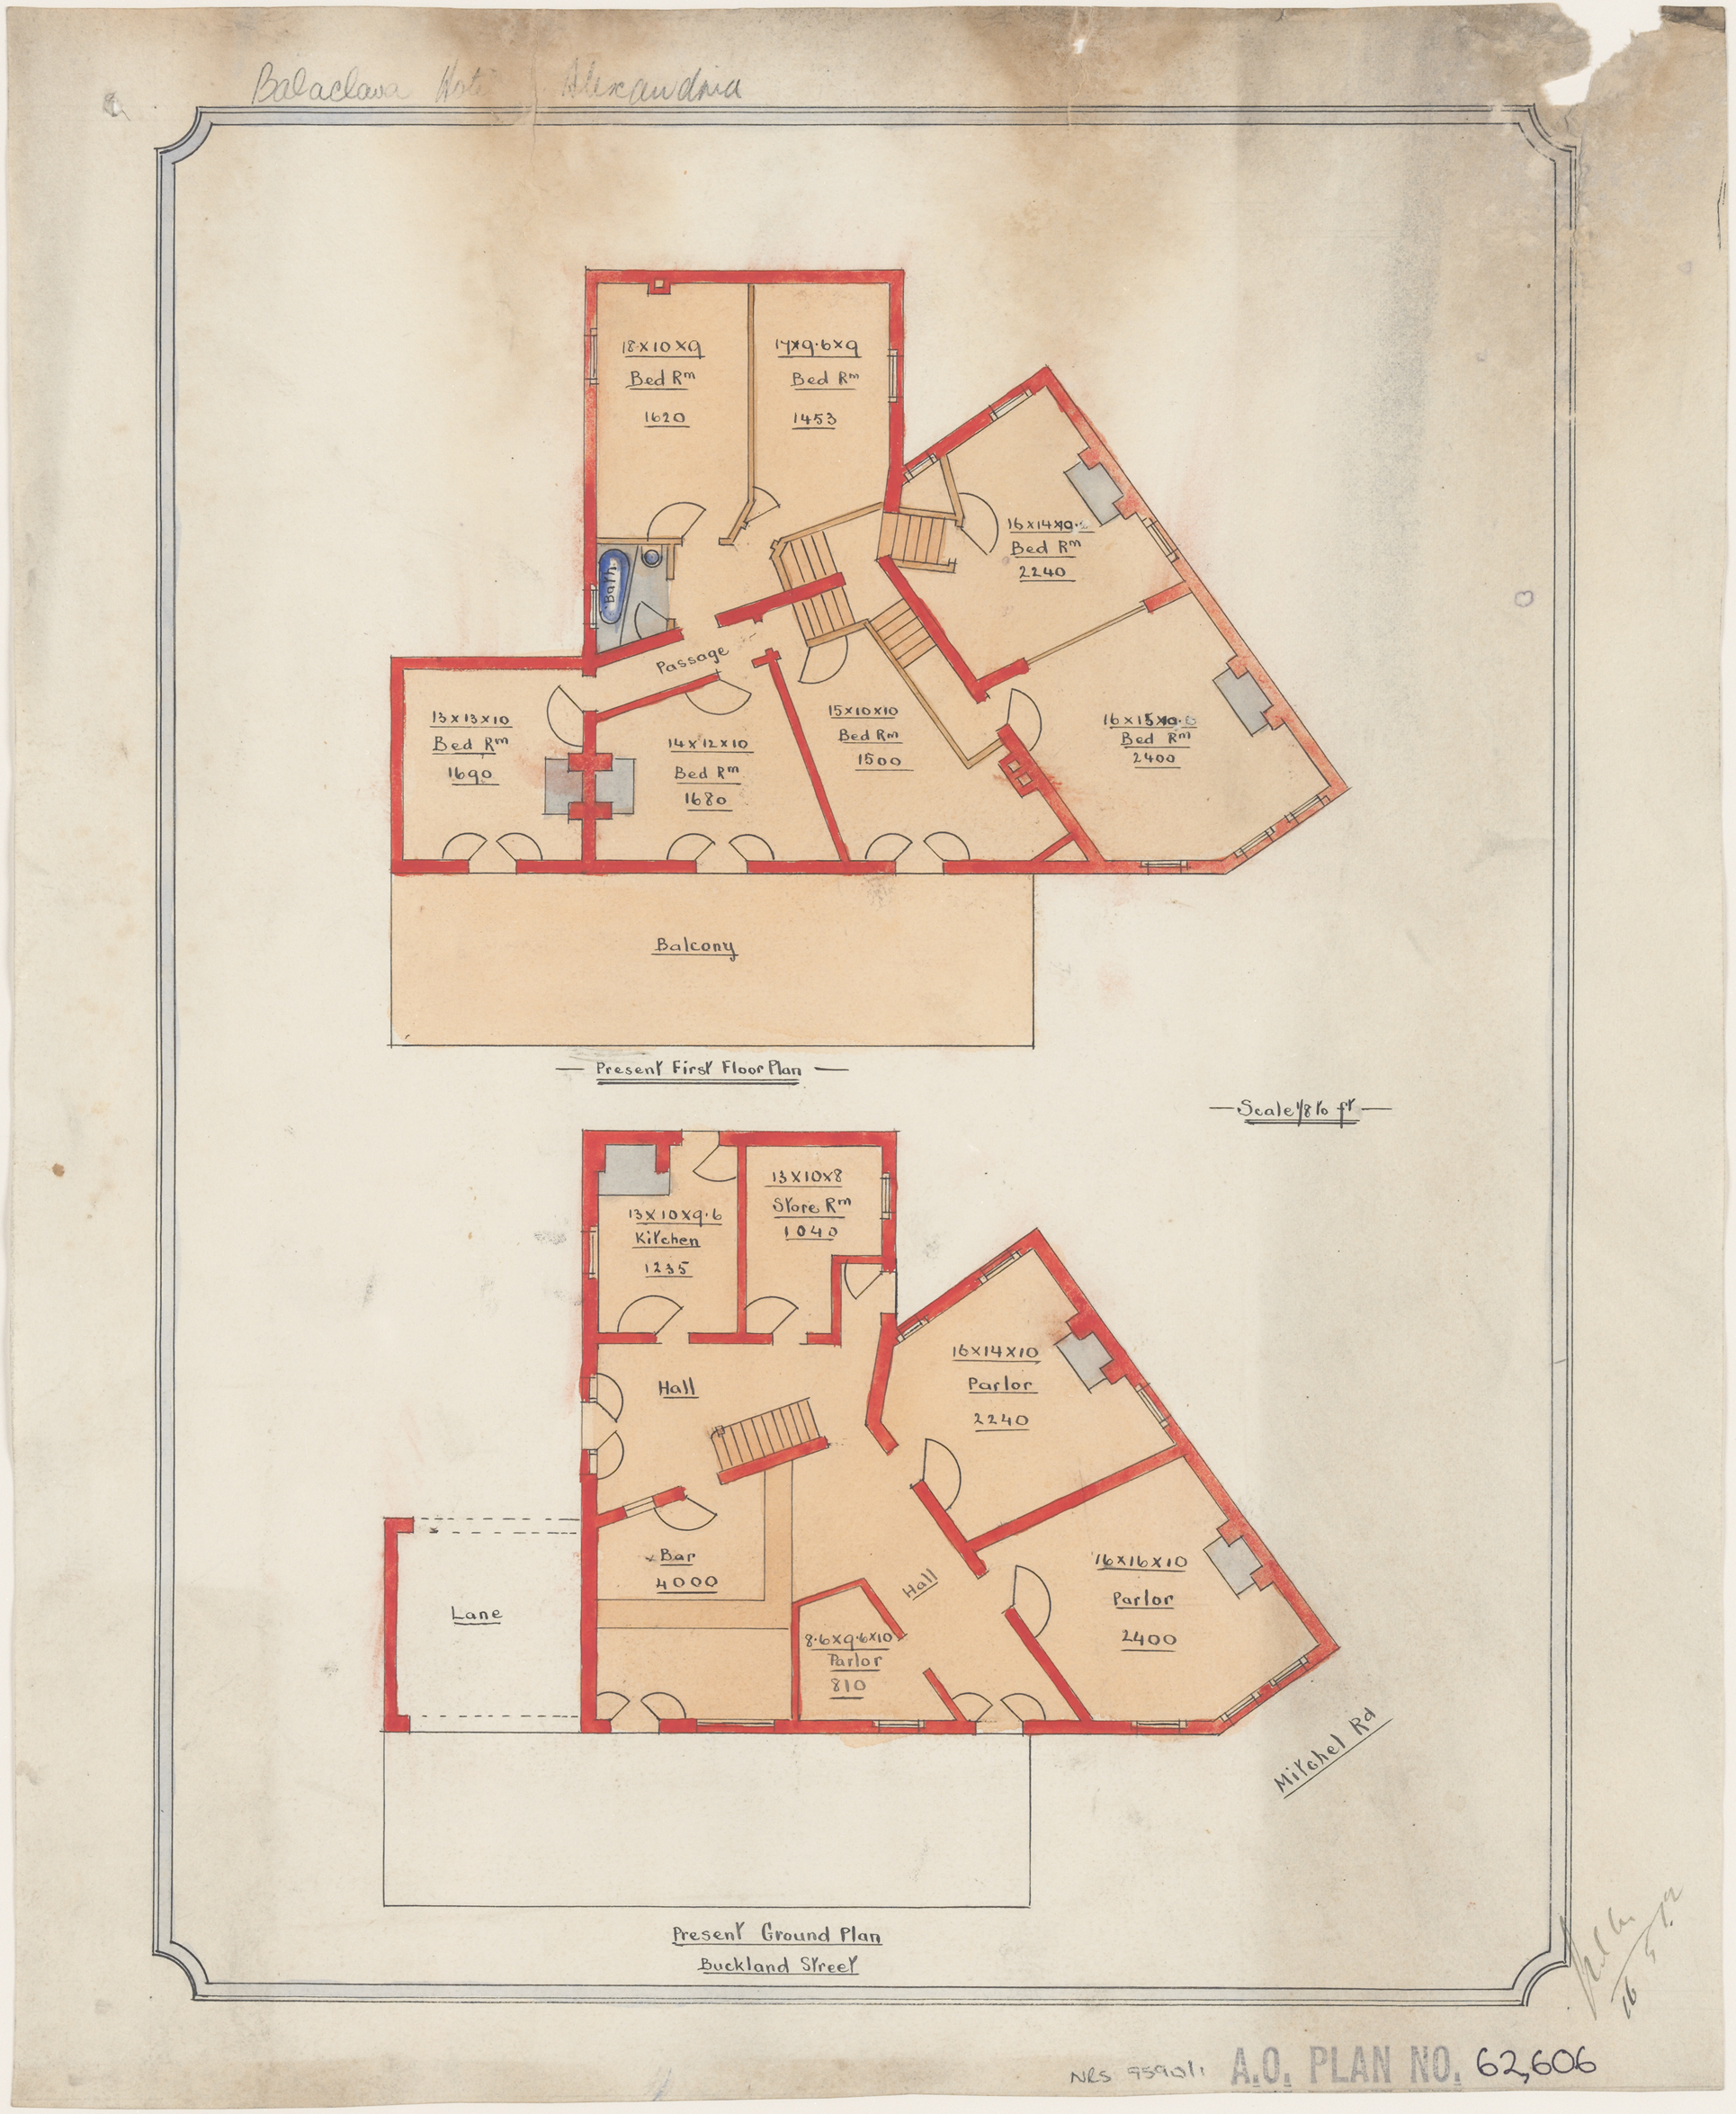 Balaclava Hotel, Buckland Street and Mitchell Road, Alexandria, Present ground and first floor plans, signed 16 May 1912